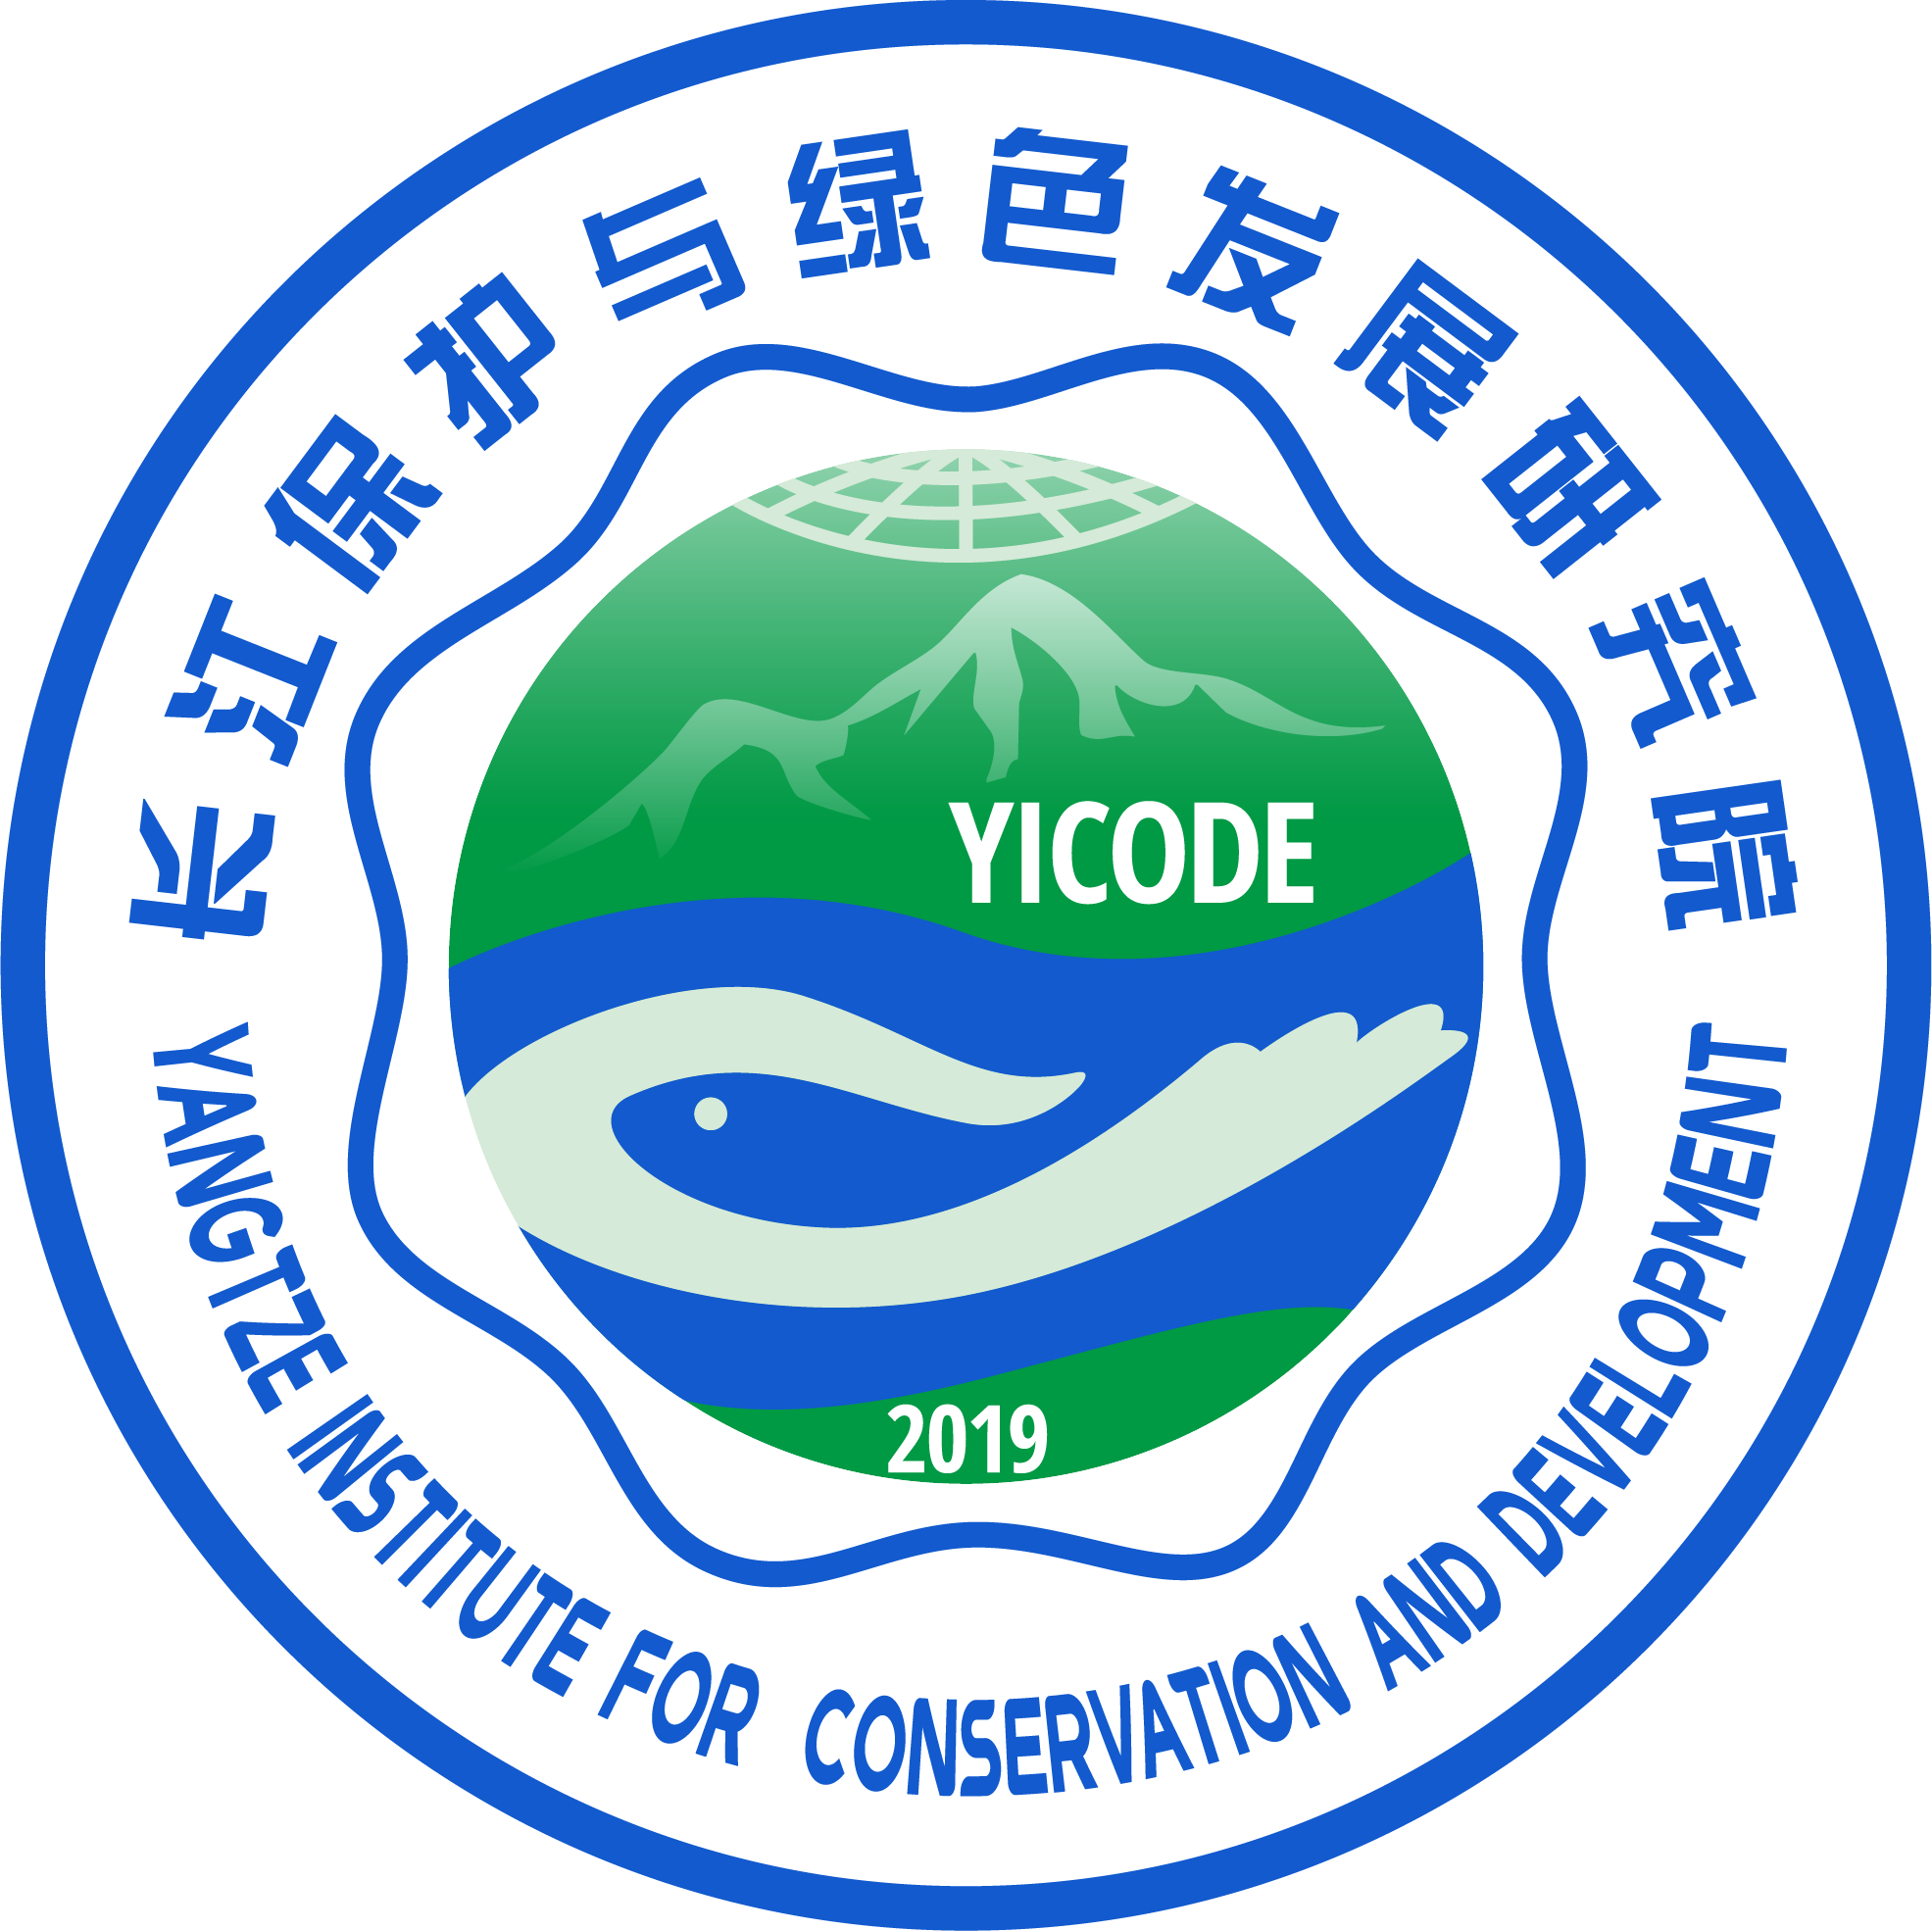 Standard YICODE logo in full colour without text